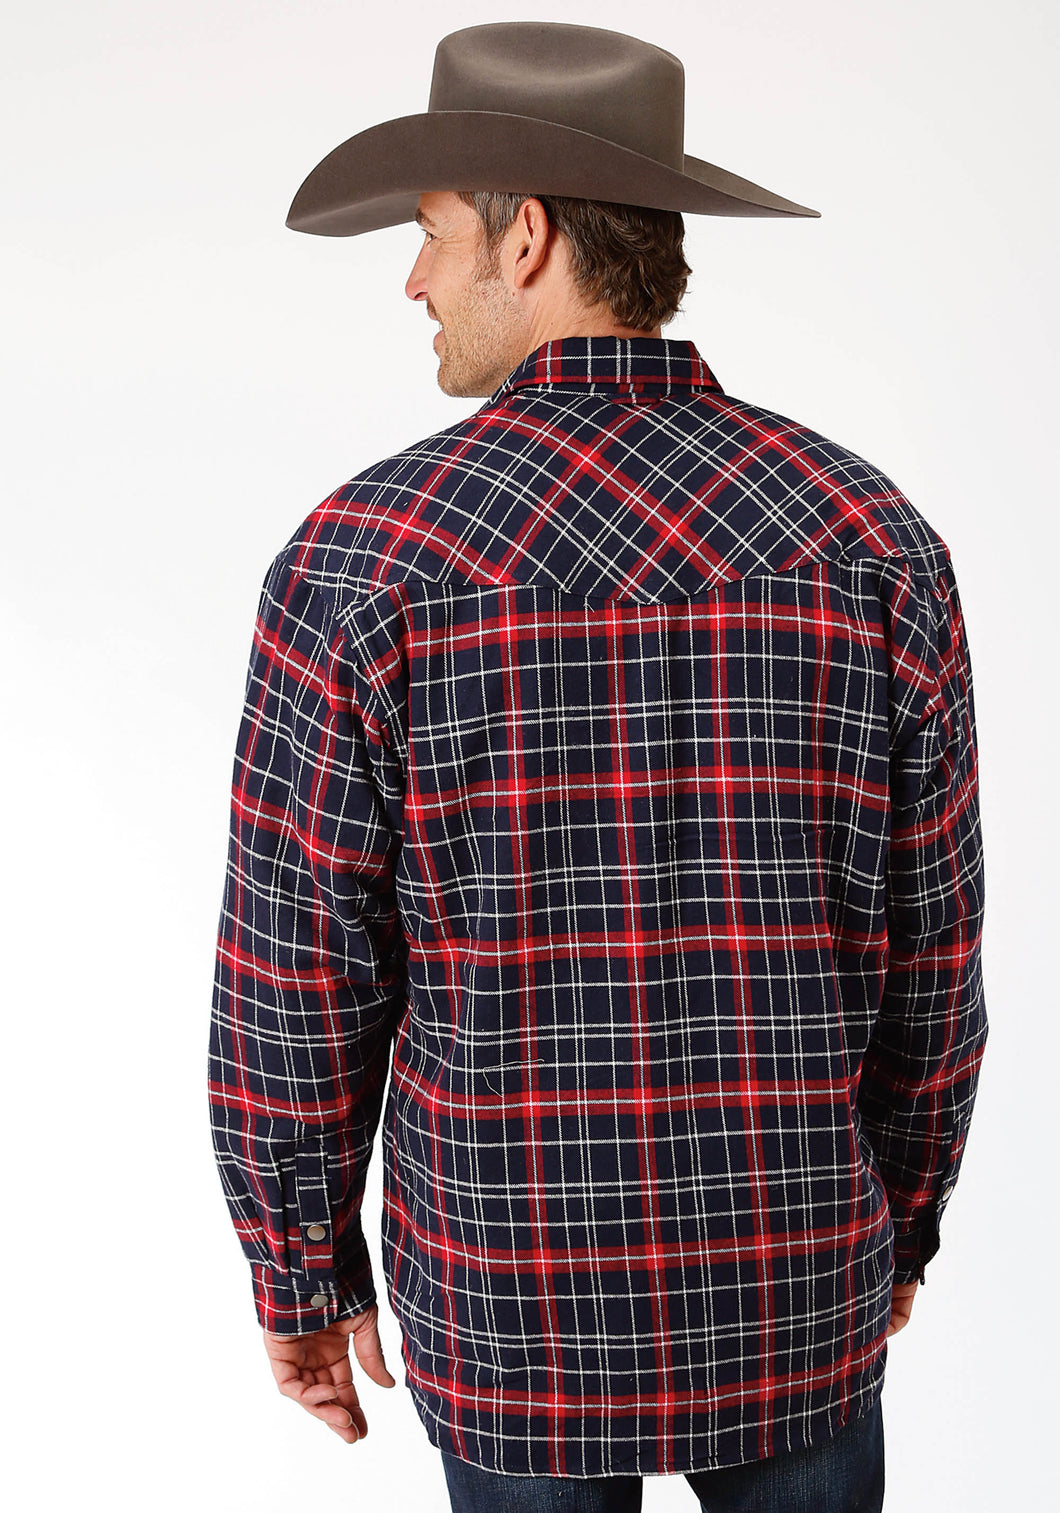 Outer Mens Jacket 9372 Rena Plaid Flannel Shirt Jckt